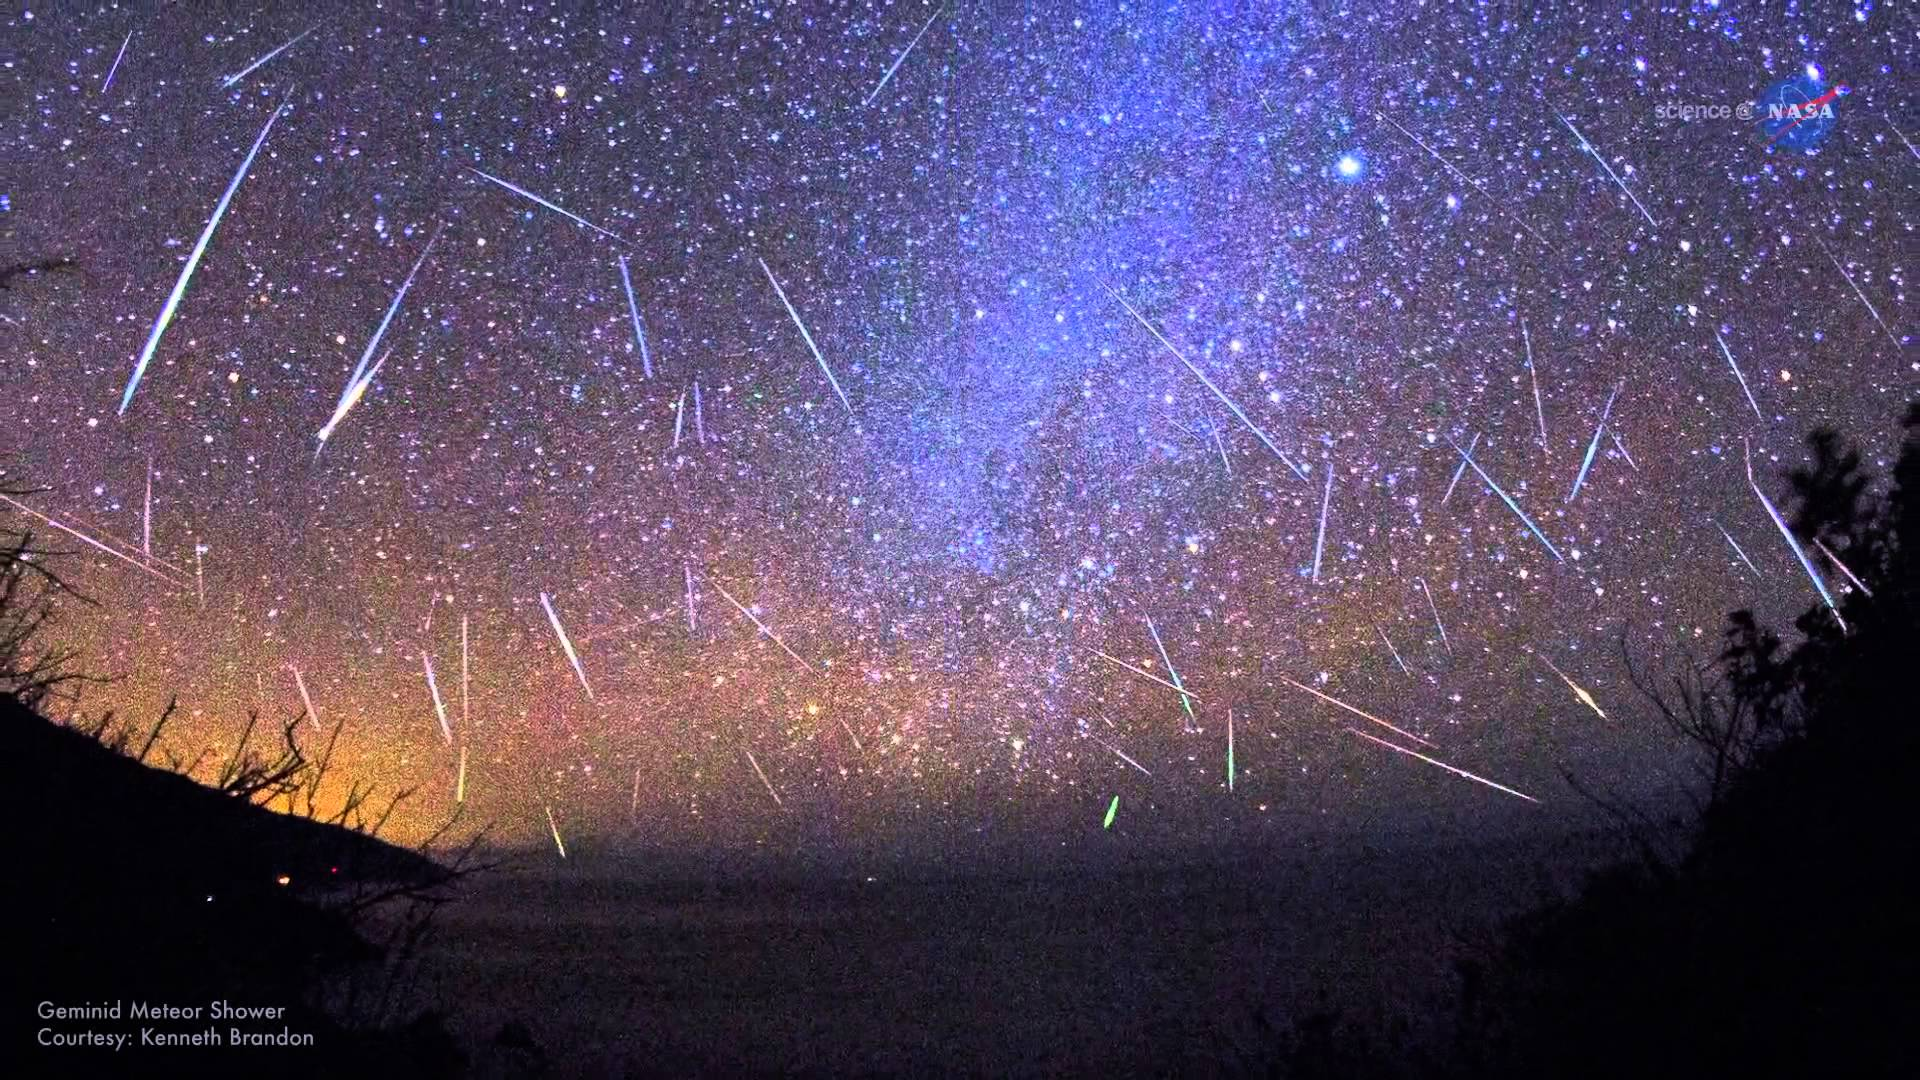 A Great Perseid Meteor Shower is Coming This Week | Video - YouTube